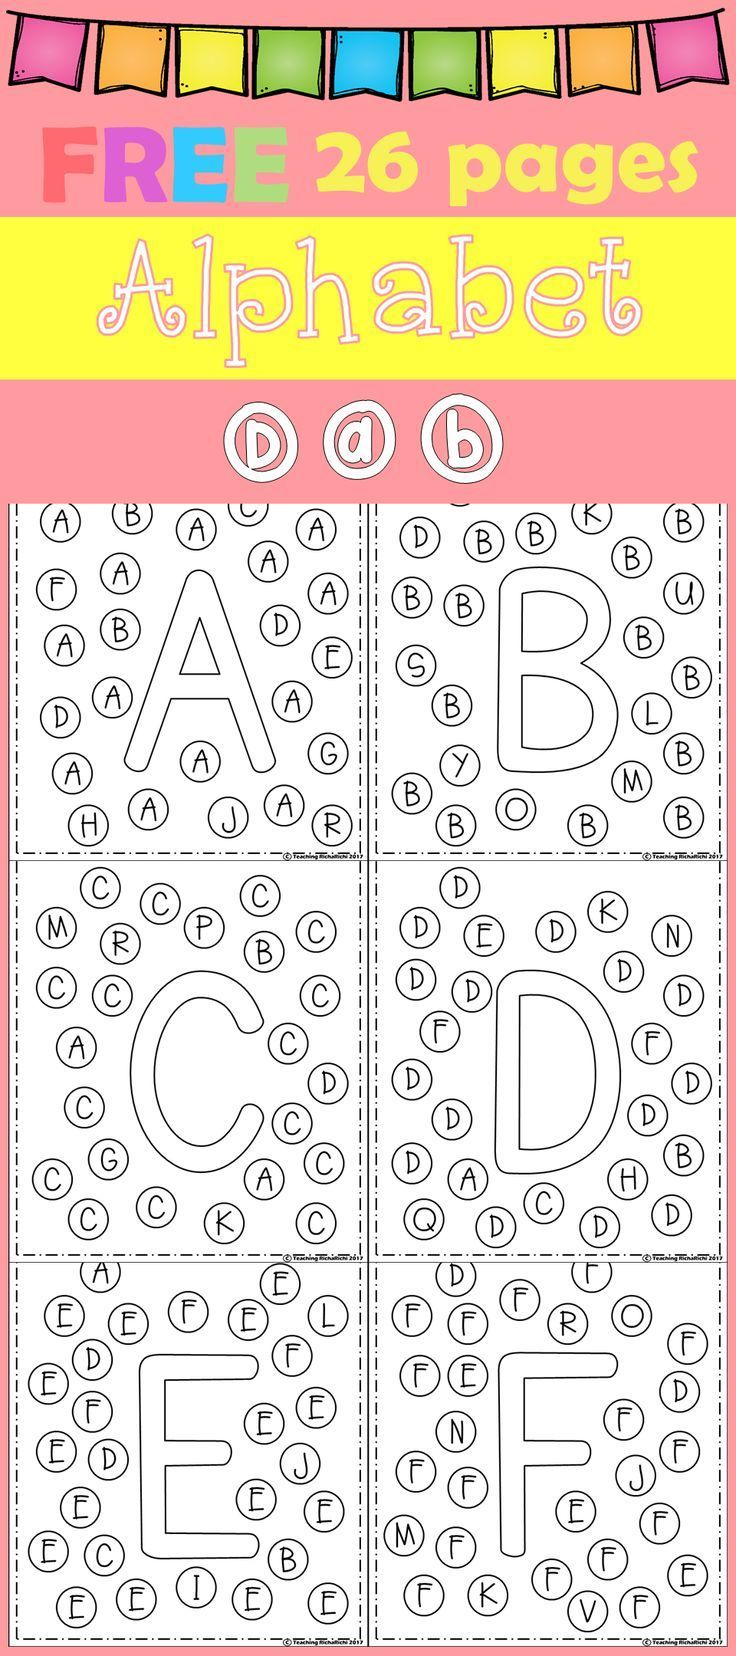 Free Freebies Alphabet Dap A-z 26 Pages For Prek And Kindergarten